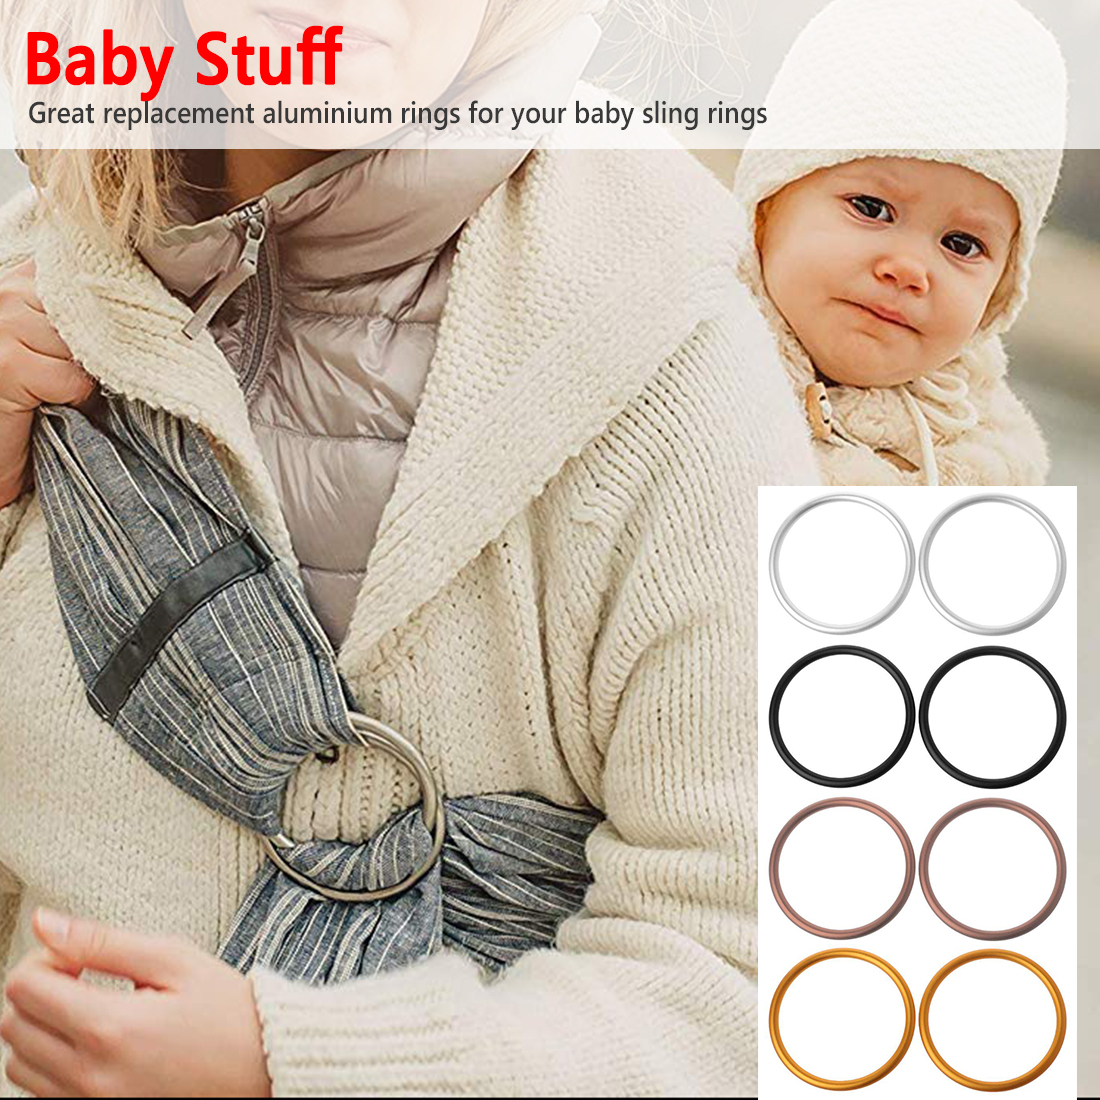 Premium Aluminum Rings For Baby Slings Baby Carriers Accessories 4 Colors For Baby Carriers & Slings 2 2.5 3 Inches